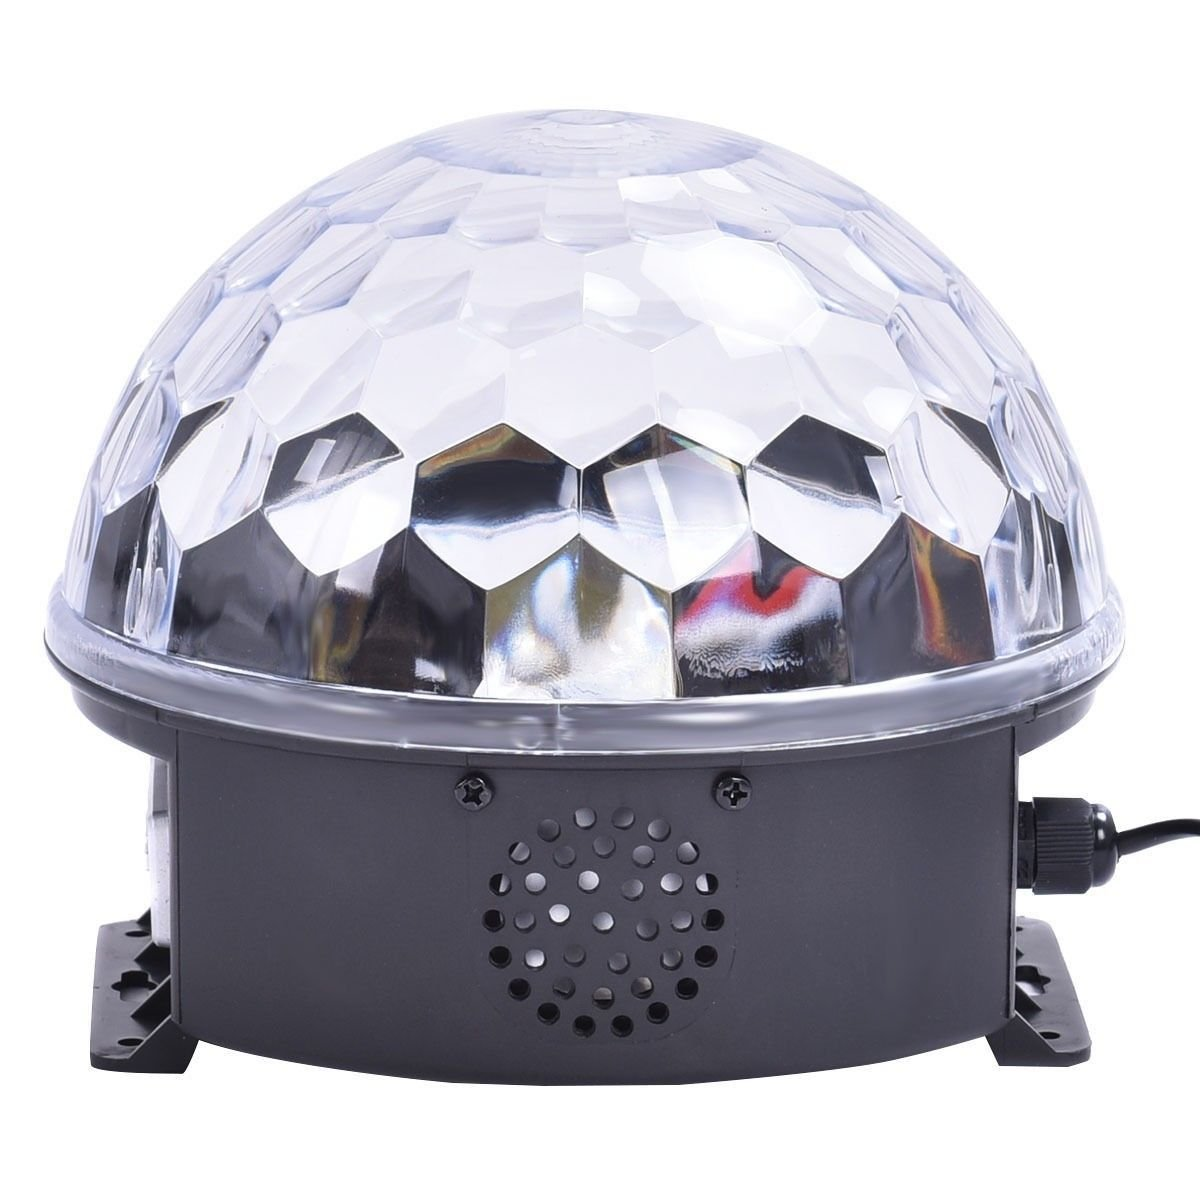 Stage Lights,Prolight LED Grystal magic ball light Led Projection Party Disco Ball DJ Lights Bluetooth Speaker Rotating Light with Remote Control Mp3 Play for KTV Xmas Party Wedding Show Club Pub by Prolight (Image #2)